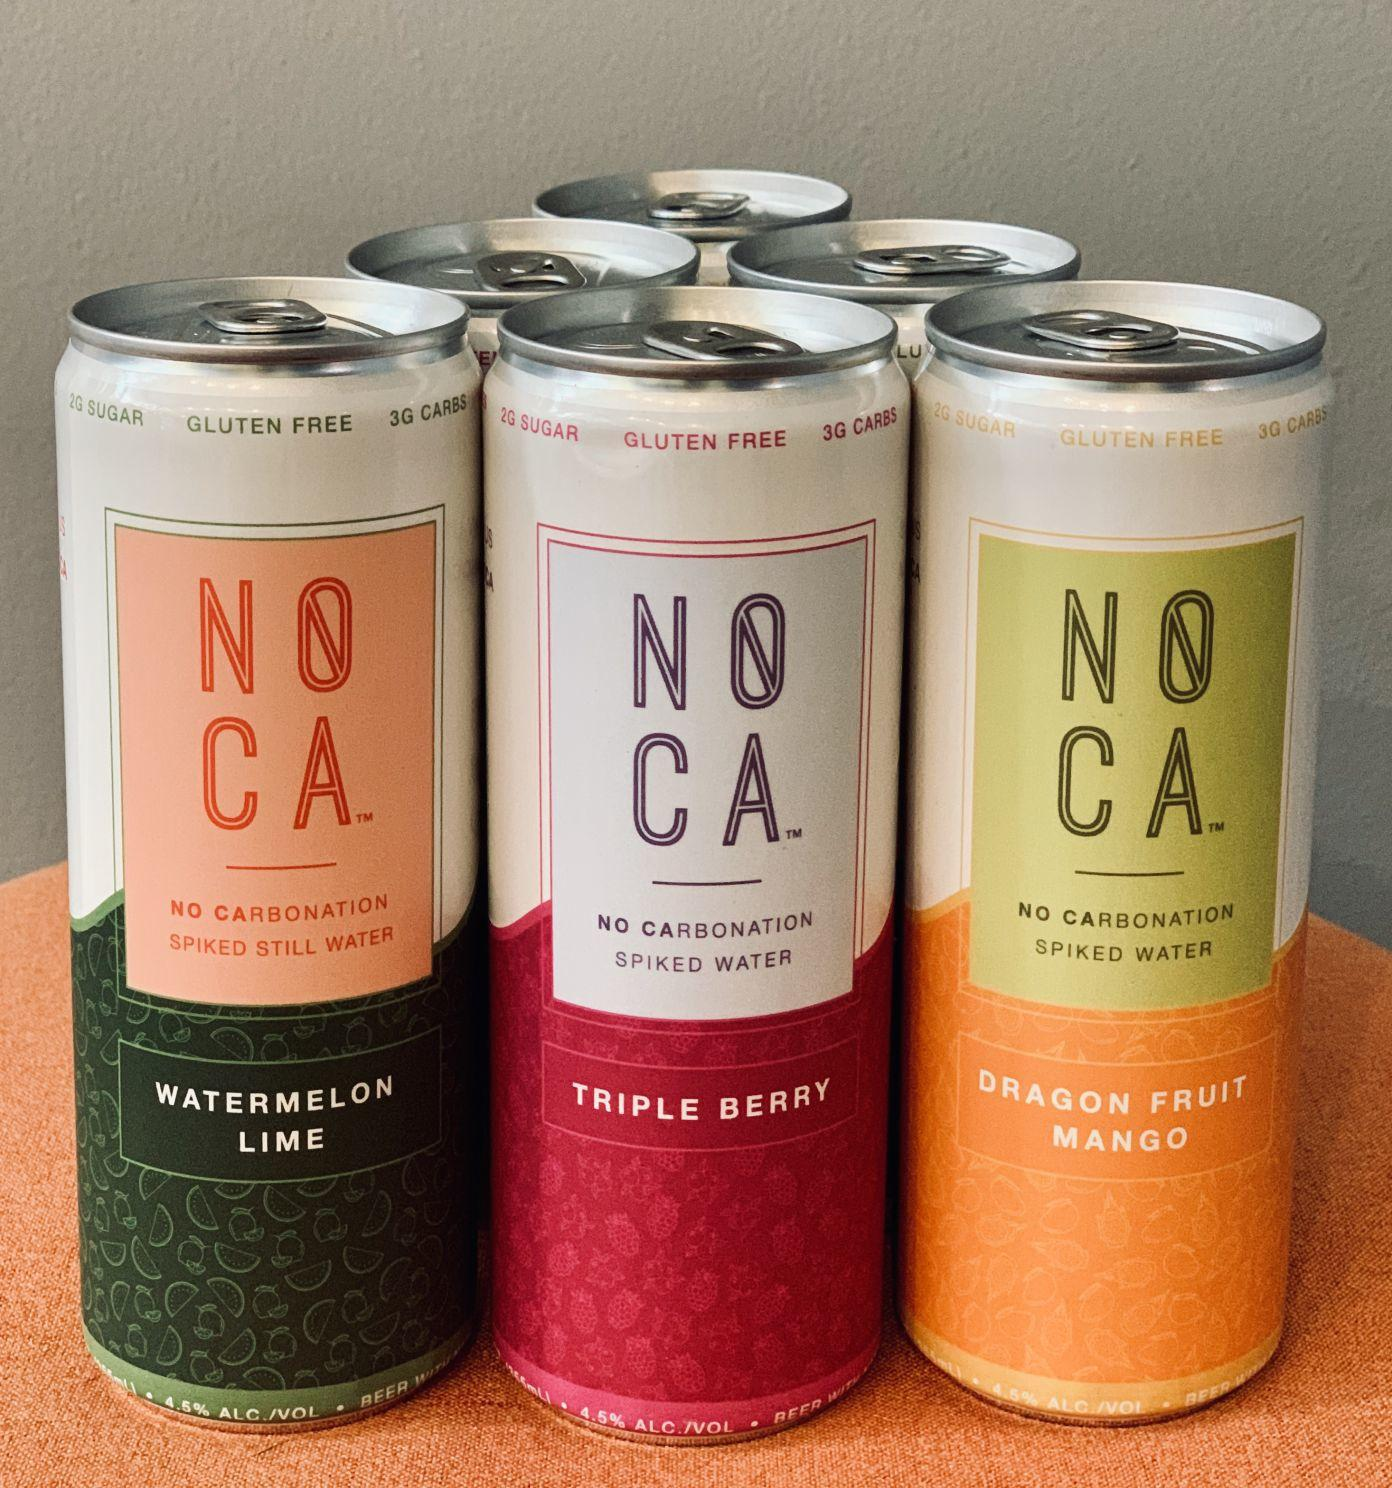 NOCA, a new non-carbonated spiked water, will launch in roughly 100 New Hampshire stores. A six-pack will cost between $8.99 and $9.99.